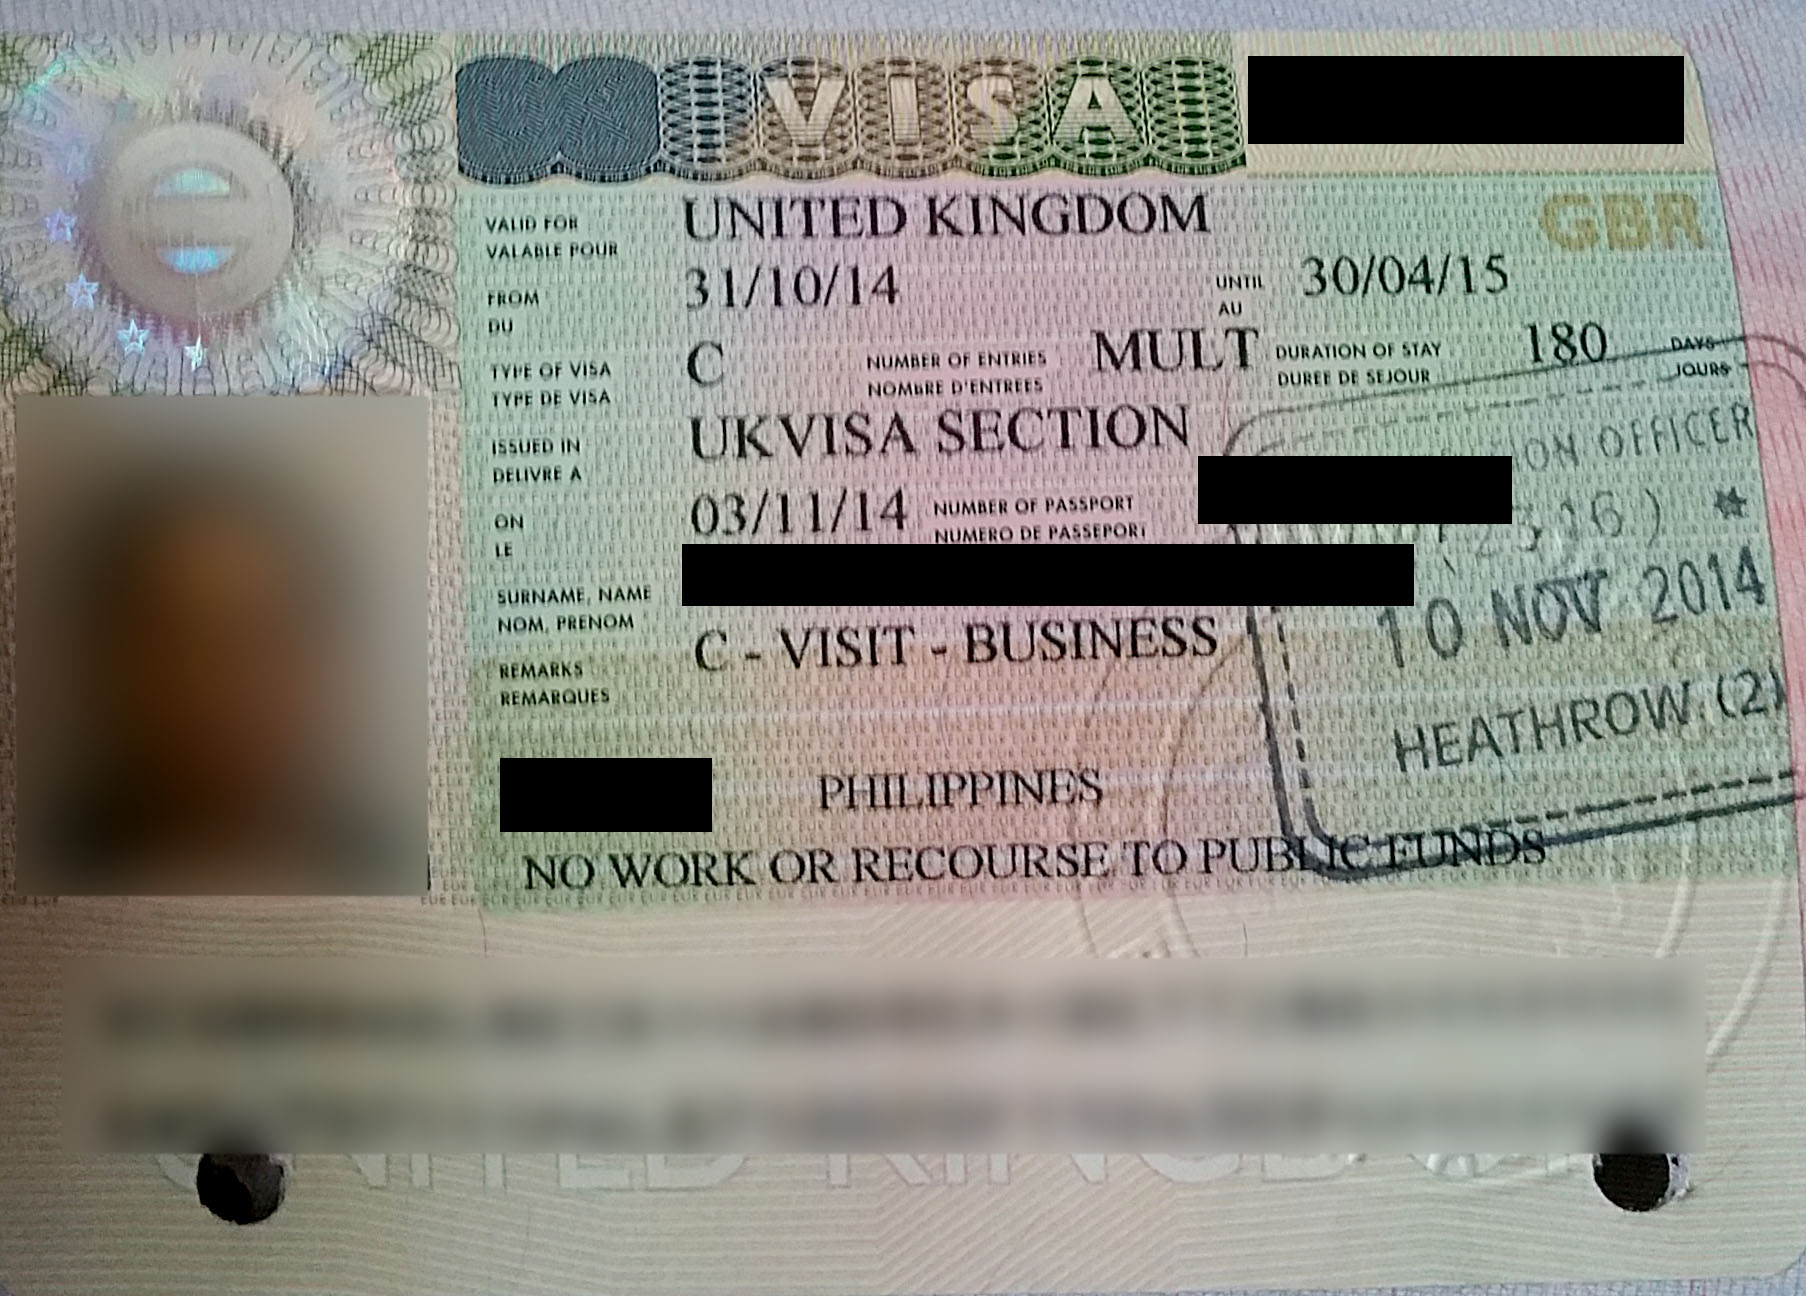 How to check uk visa status with passport number in india